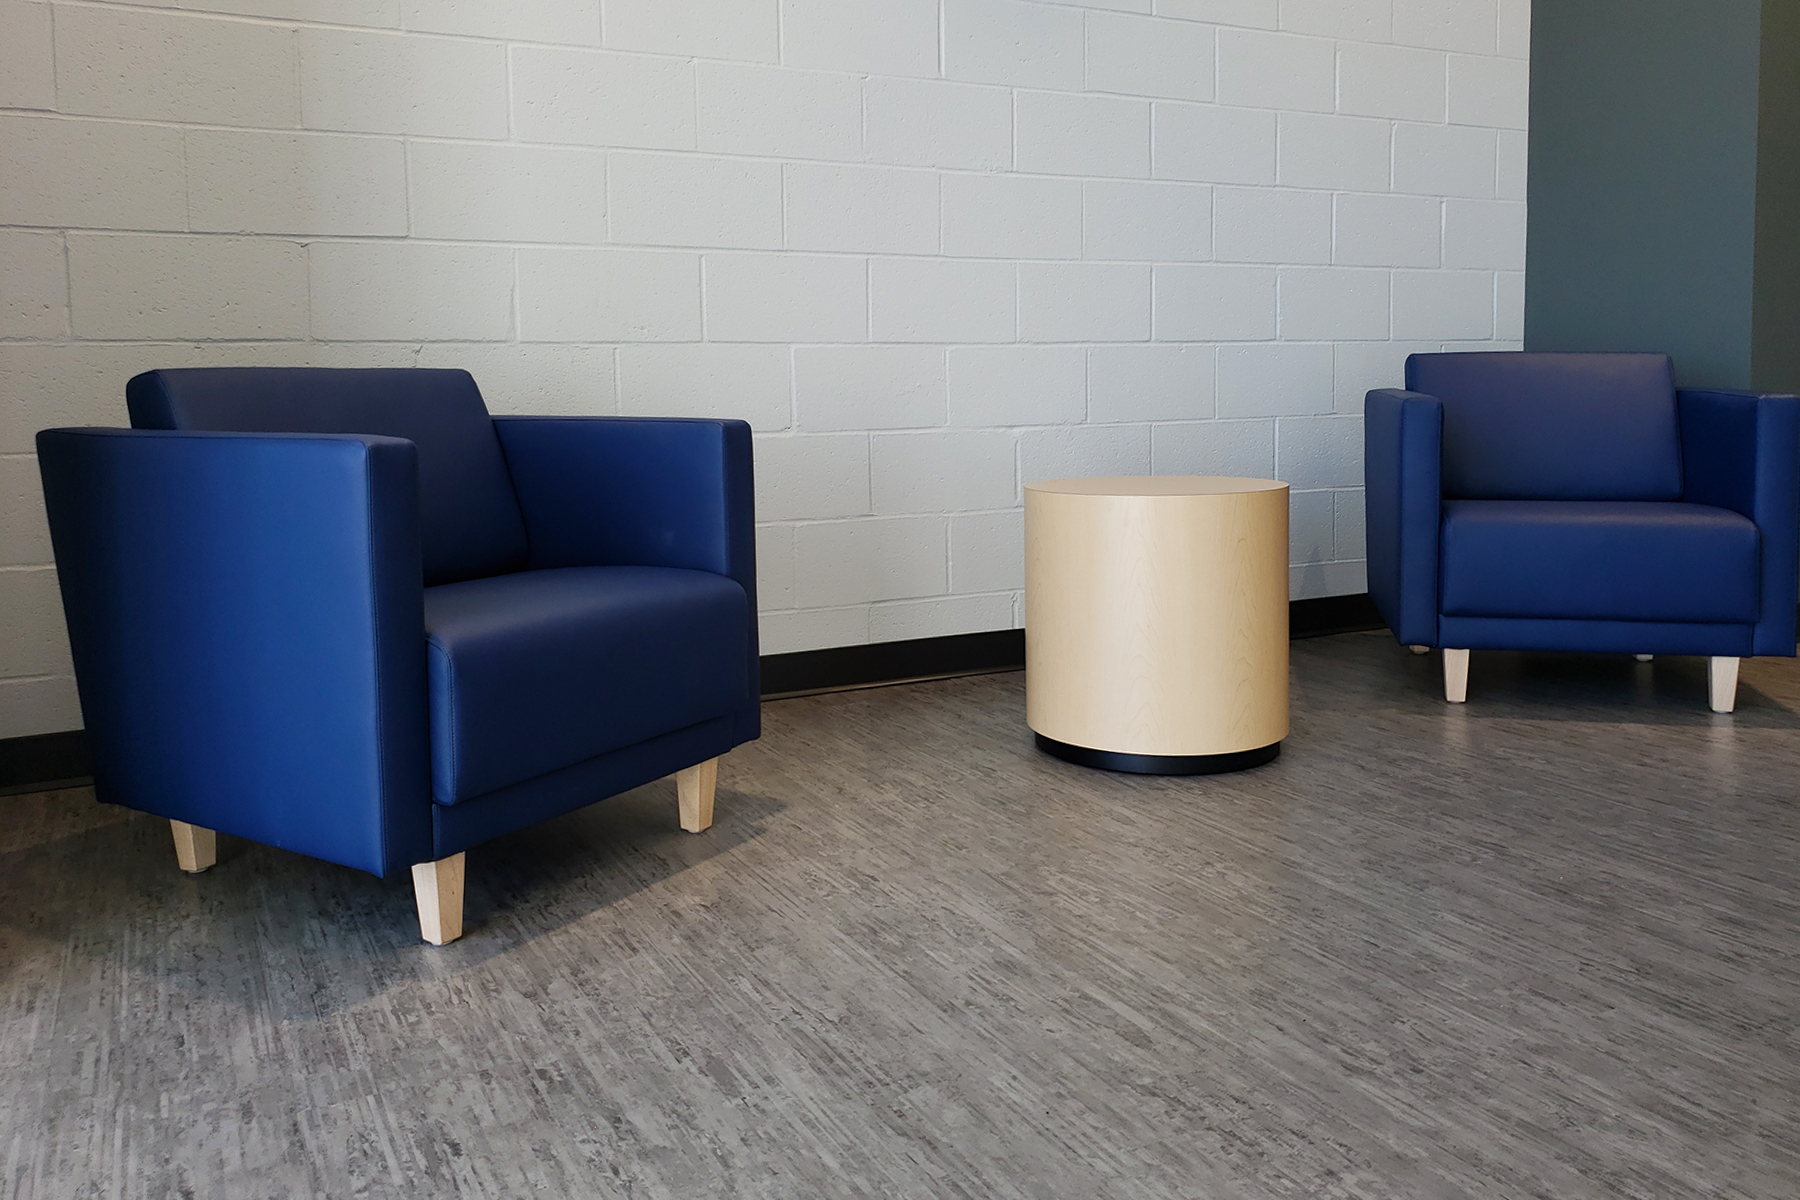 Hon® Flock™ Lounge Seating and Side Table